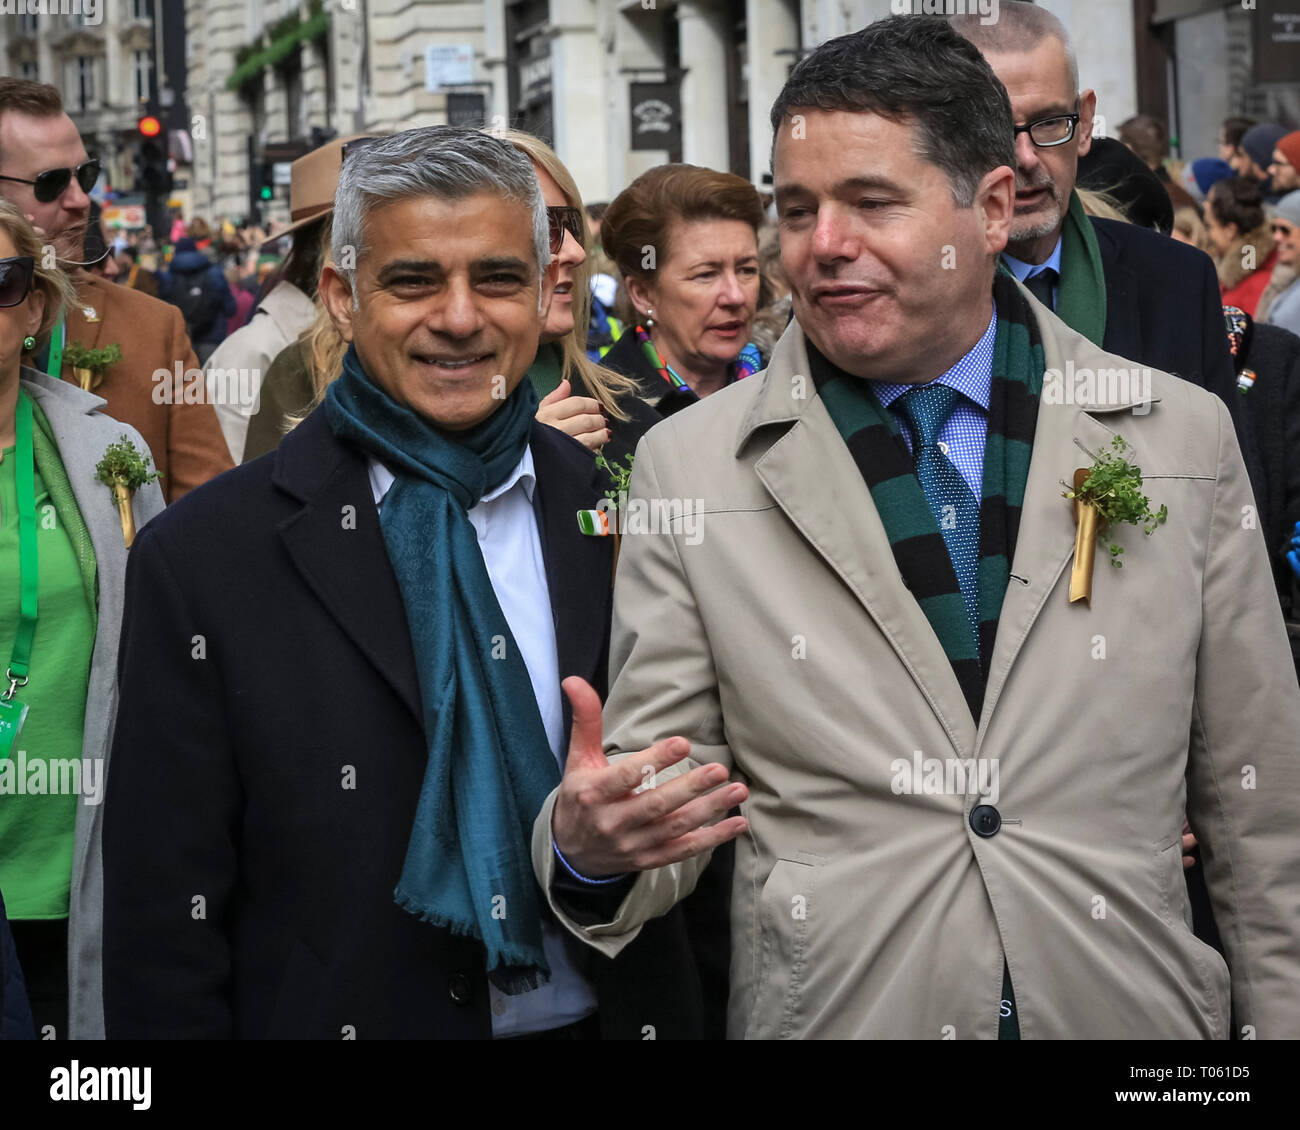 London, UK, 17th Mar 2019. Sadiq Khan (m), with Irish Minister of Finance Paschal Donoghue (r) and James Nesbitt (l). Now in its 17th year, the parade attracts more than 50,000 people for a colourful procession of Irish marching bands from the UK, US and Ireland, energetic dance troupes and spectacular pageantry. Credit: Imageplotter/Alamy Live News - Stock Image